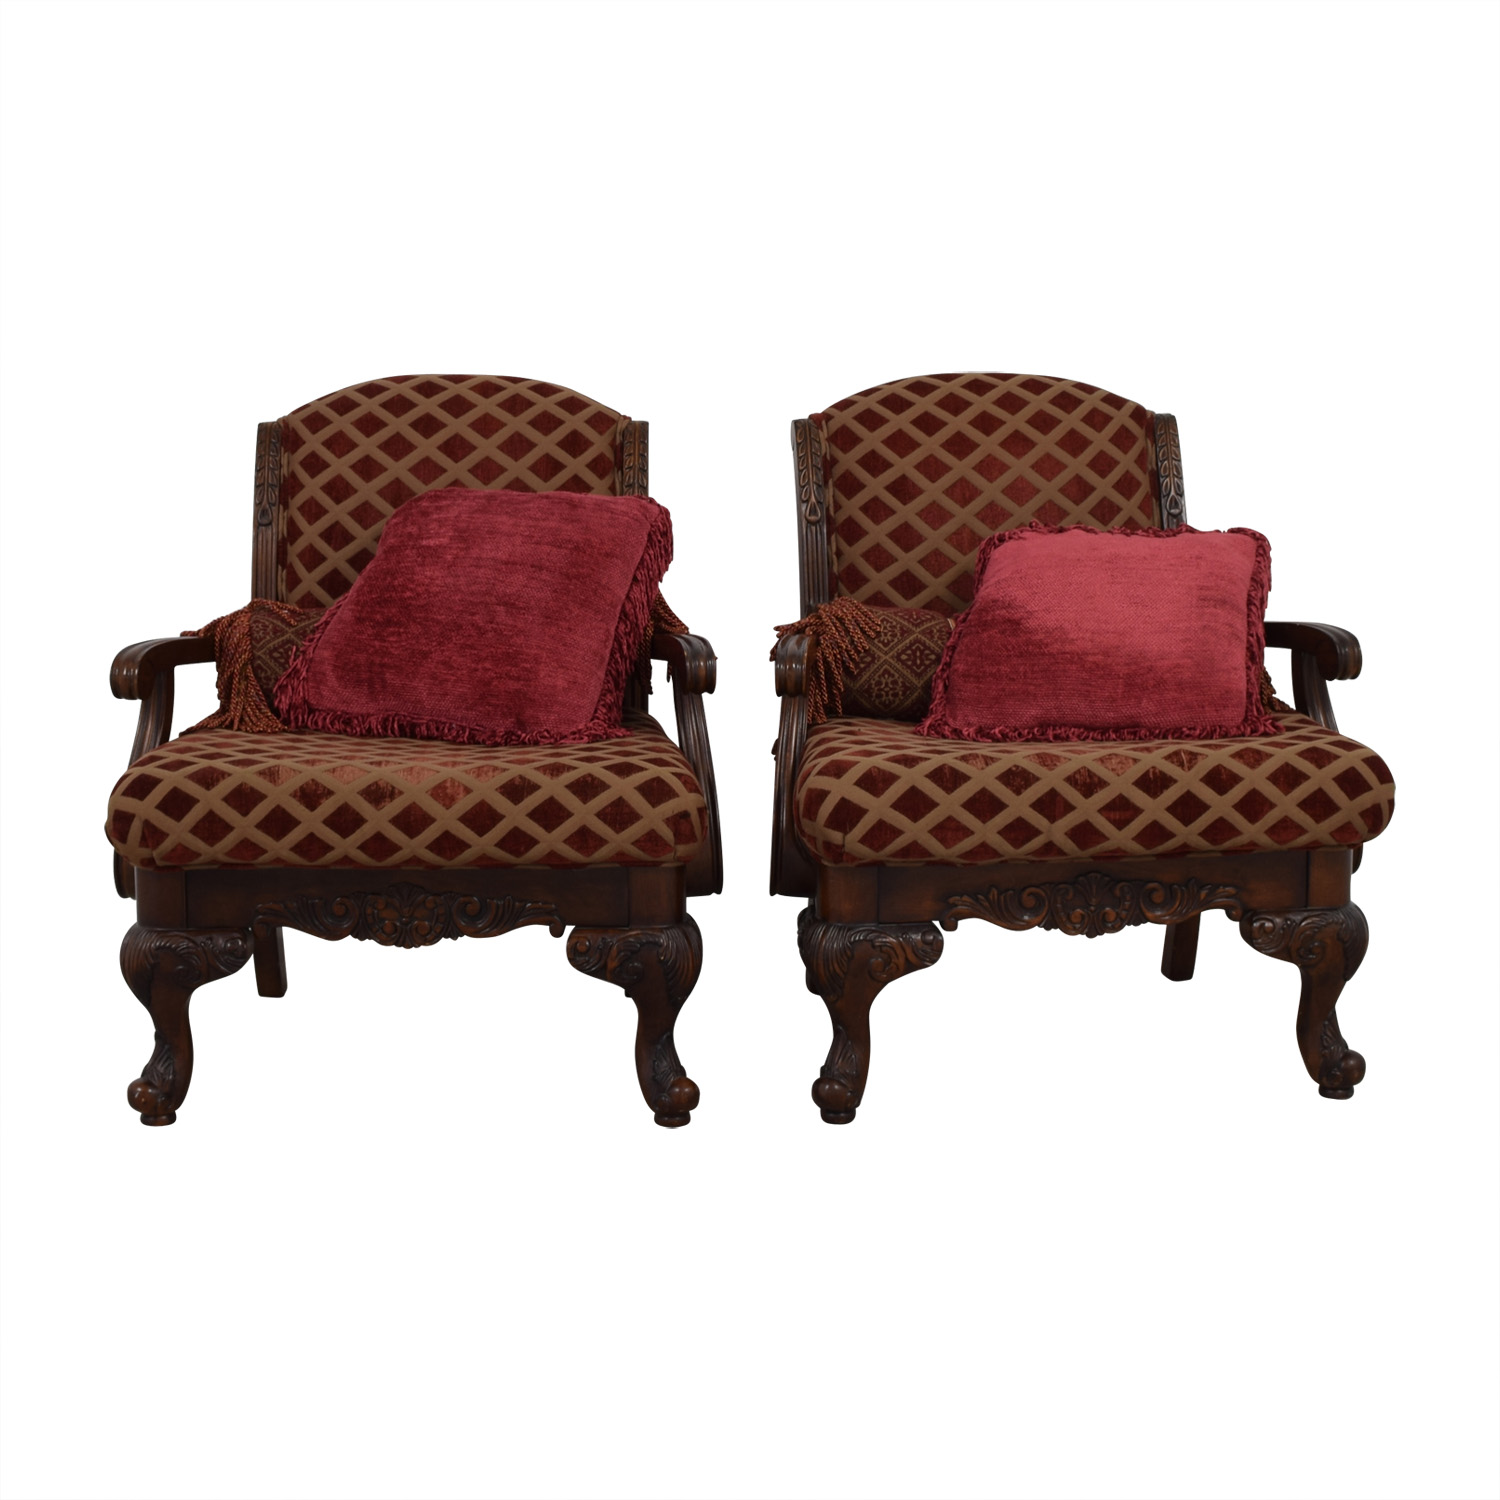 buy Burgundy and Gold Accent Chairs with Toss Pillows Accent Chairs